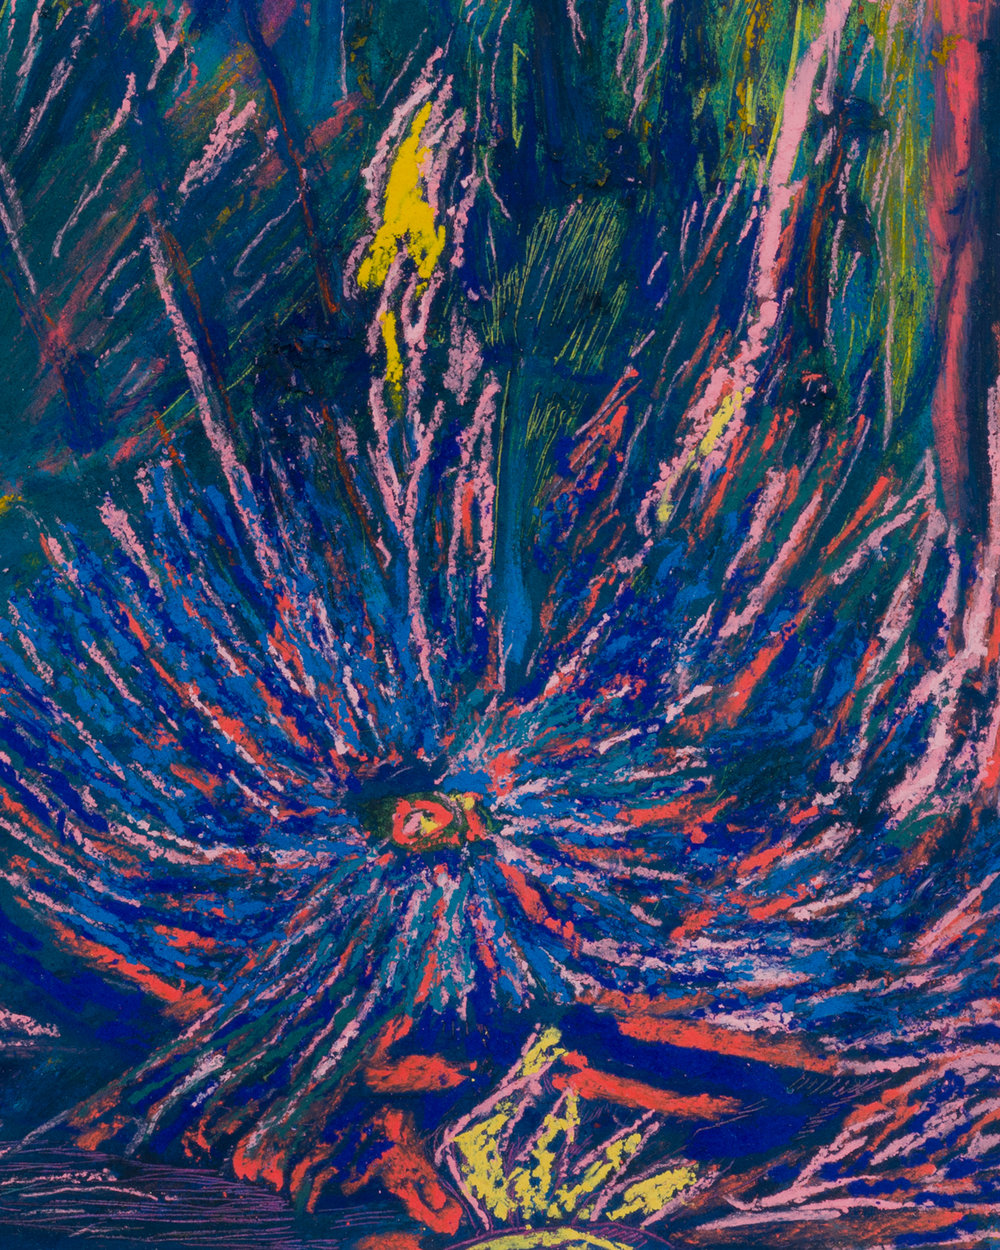 Mimi Lauter  Untitled  (Detail) 2018 Oil pastel and soft pastel on paper 12h x 9w in MLaut093